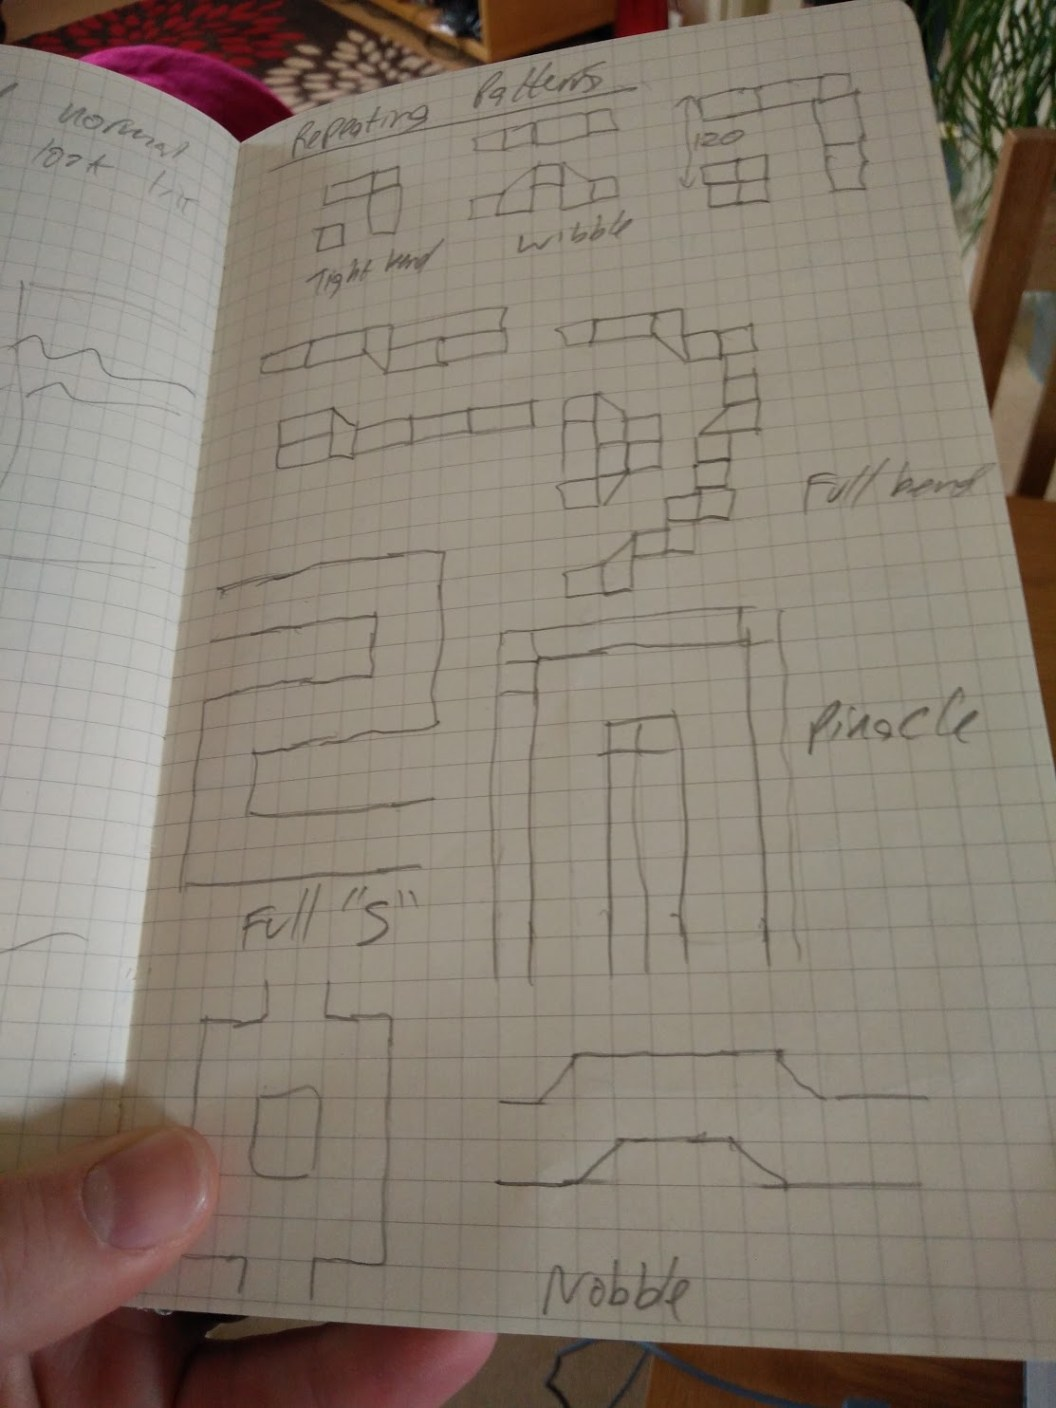 Notebook showing pieces